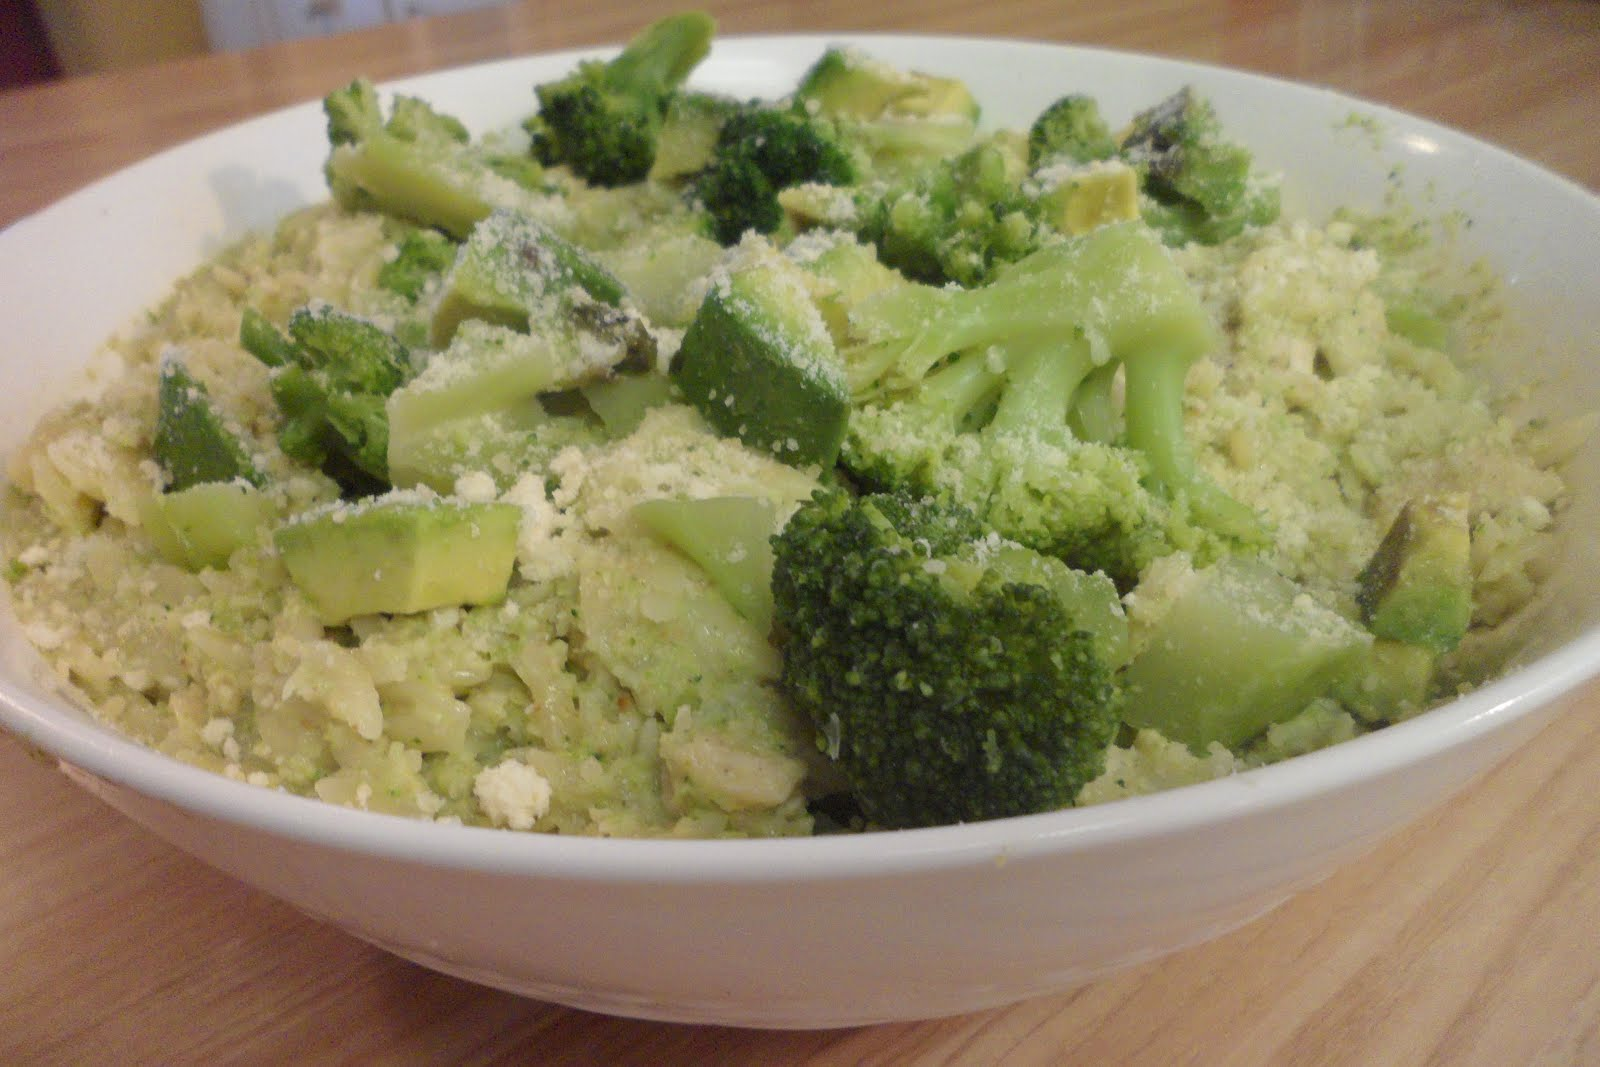 ... : Whole Wheat Orzo with Broccoli-Pine nut Pesto and Chicken